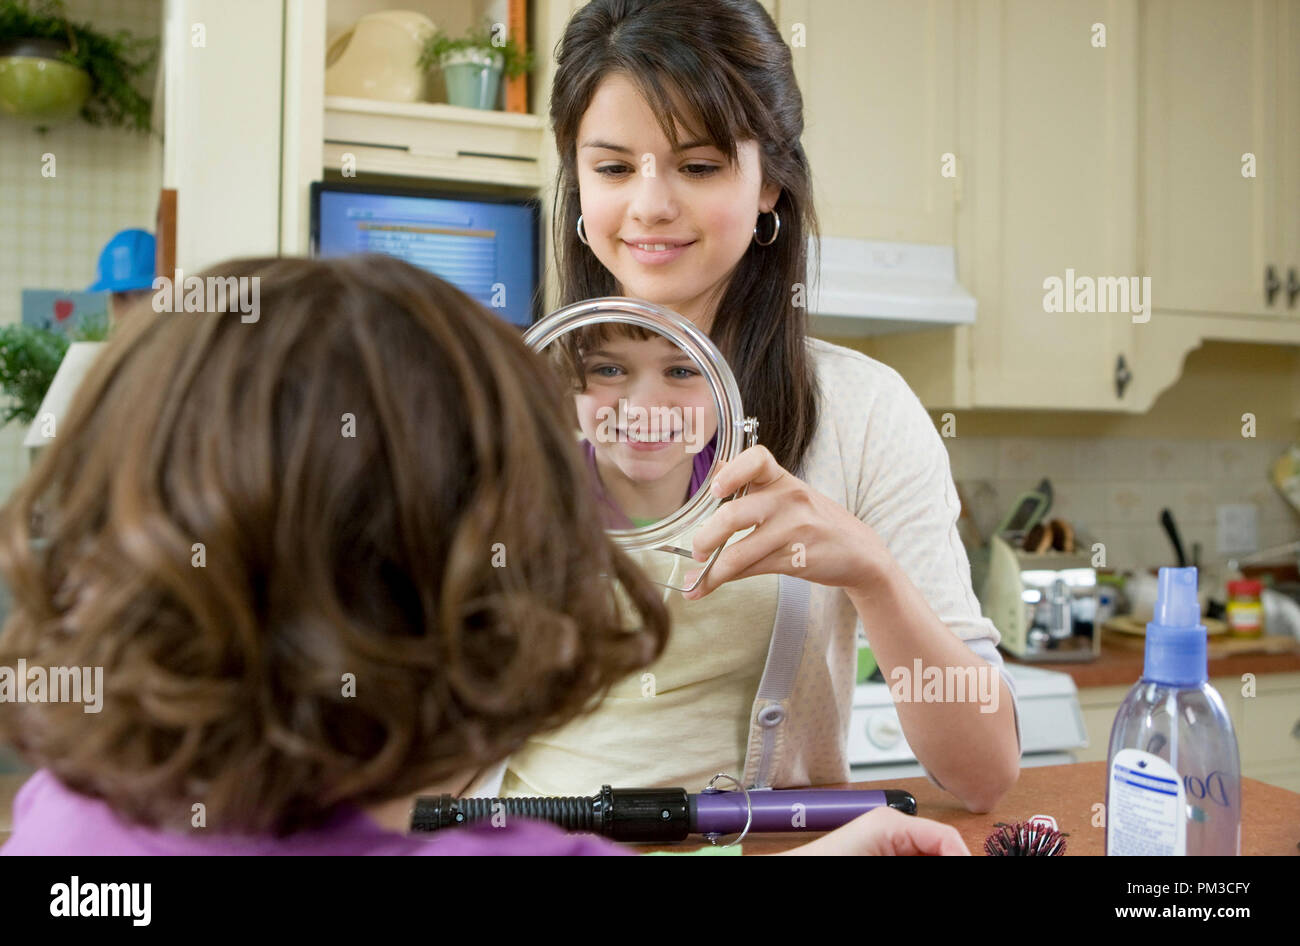 Beezus Quimby (Selena Gomez, standing) and younger sister Ramona (Joey King) enjoy a rare moment of family tranquility in Ramona and Beezus. - Stock Image